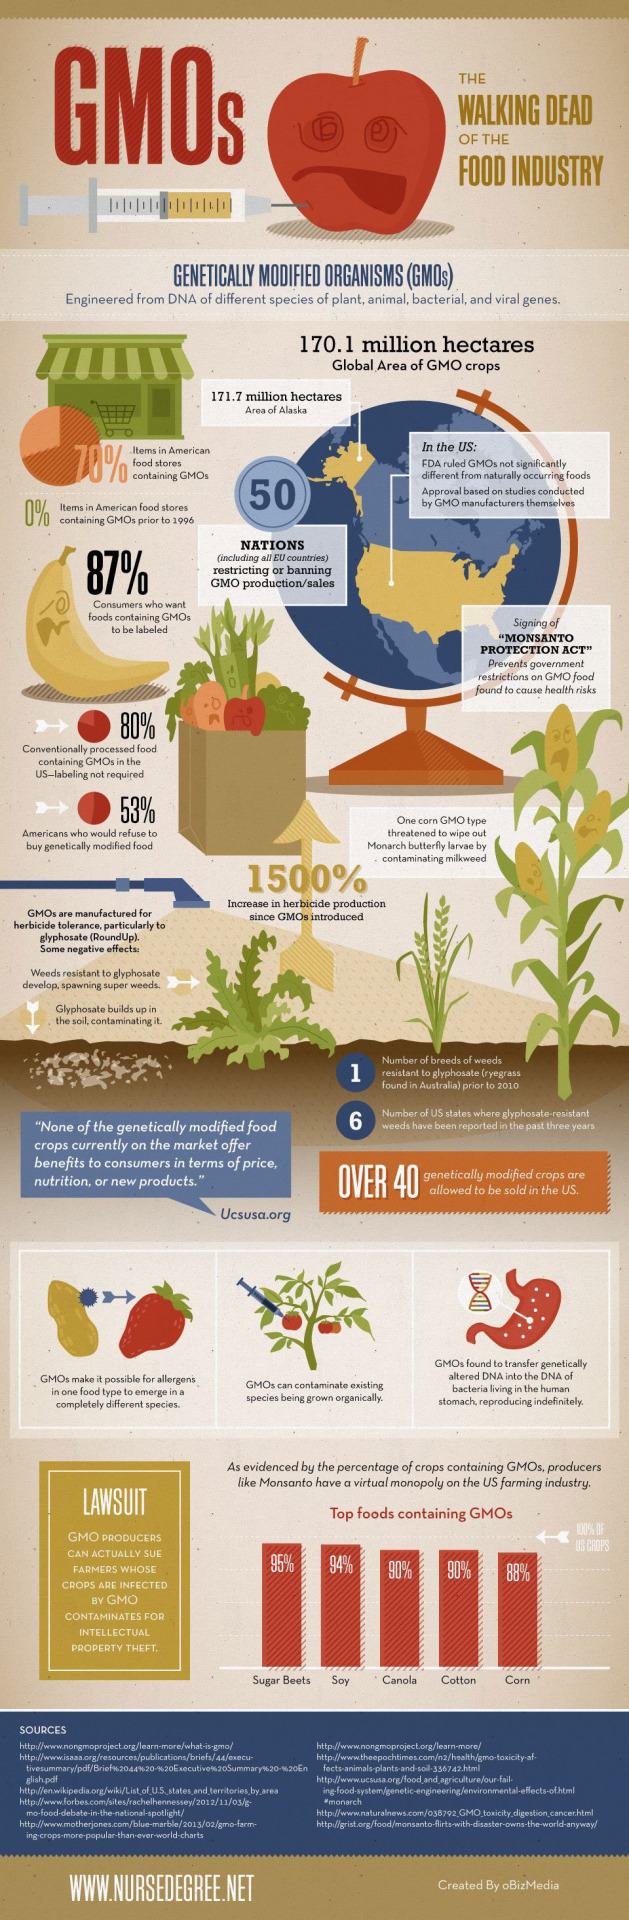 ahealthblog: Genetically Modified Organisms Infographic GMO's, The walking dead of the food industry….